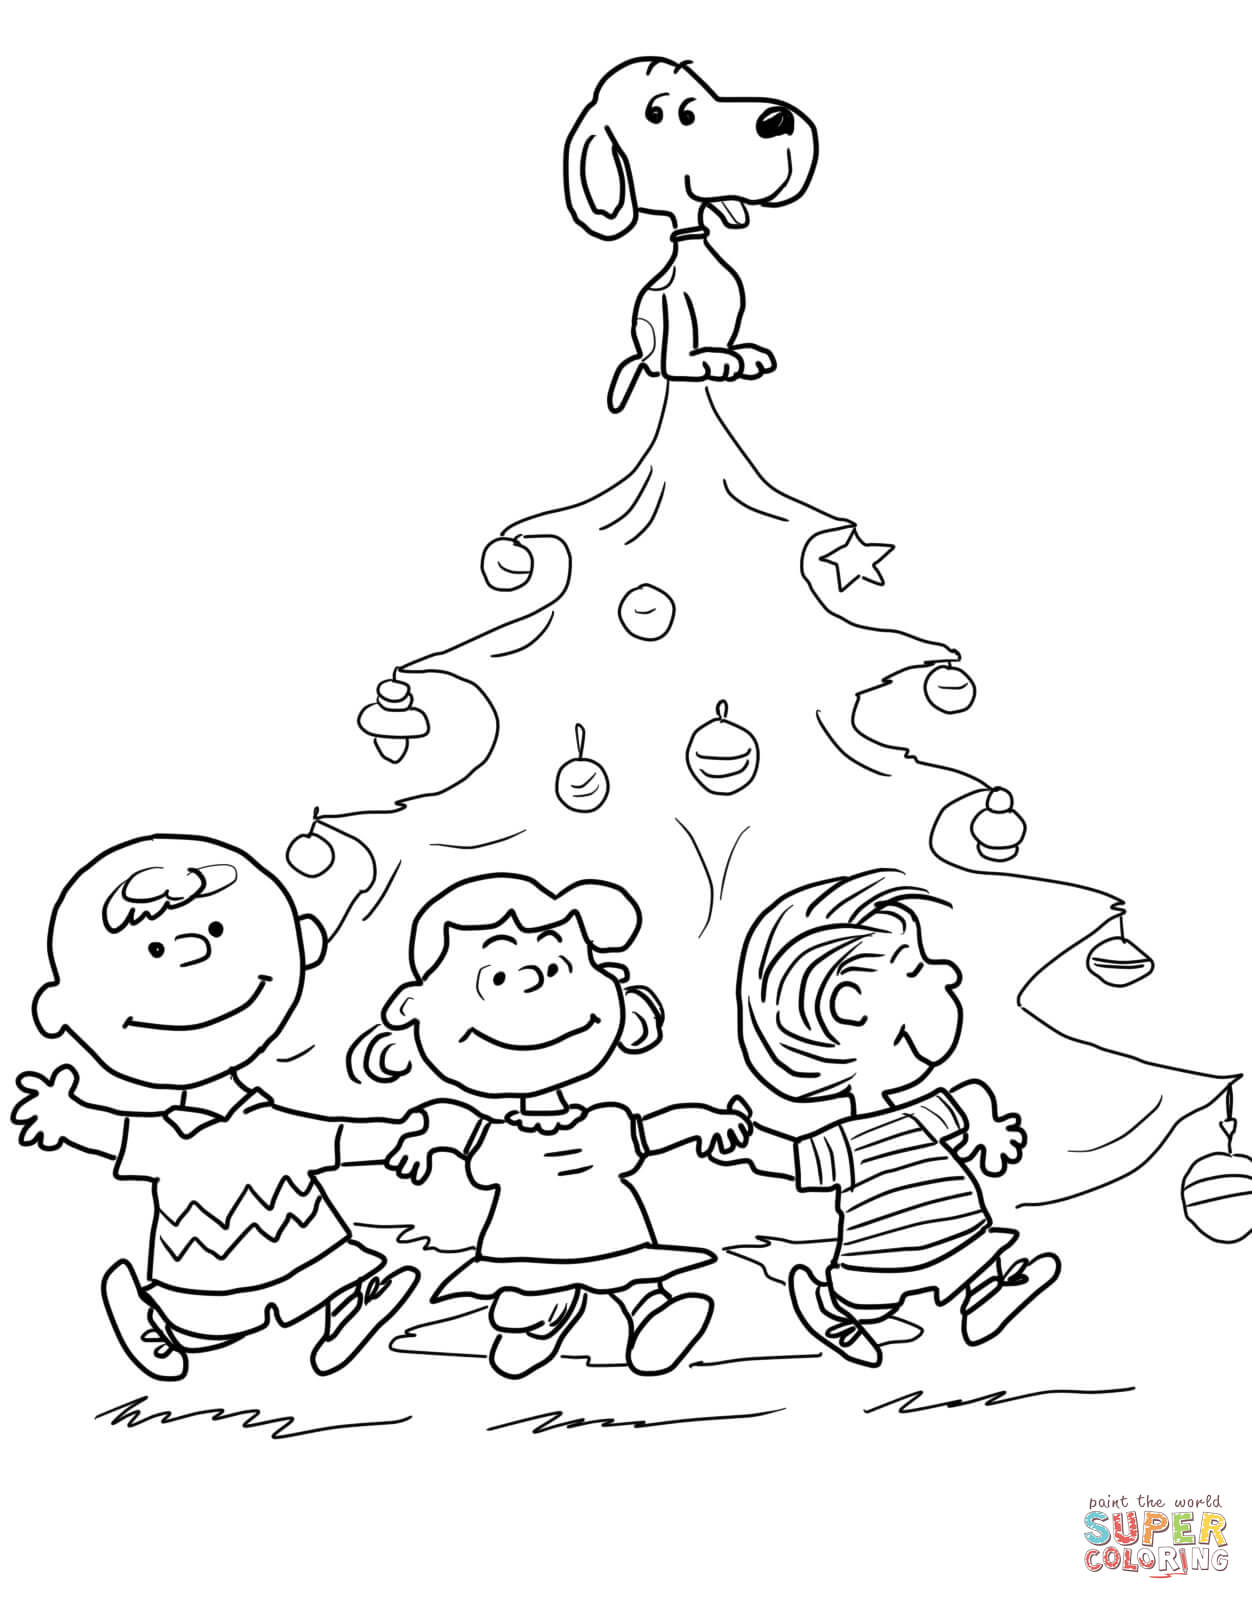 Charlie Brown Christmas Tree coloring page | Free Printable ...